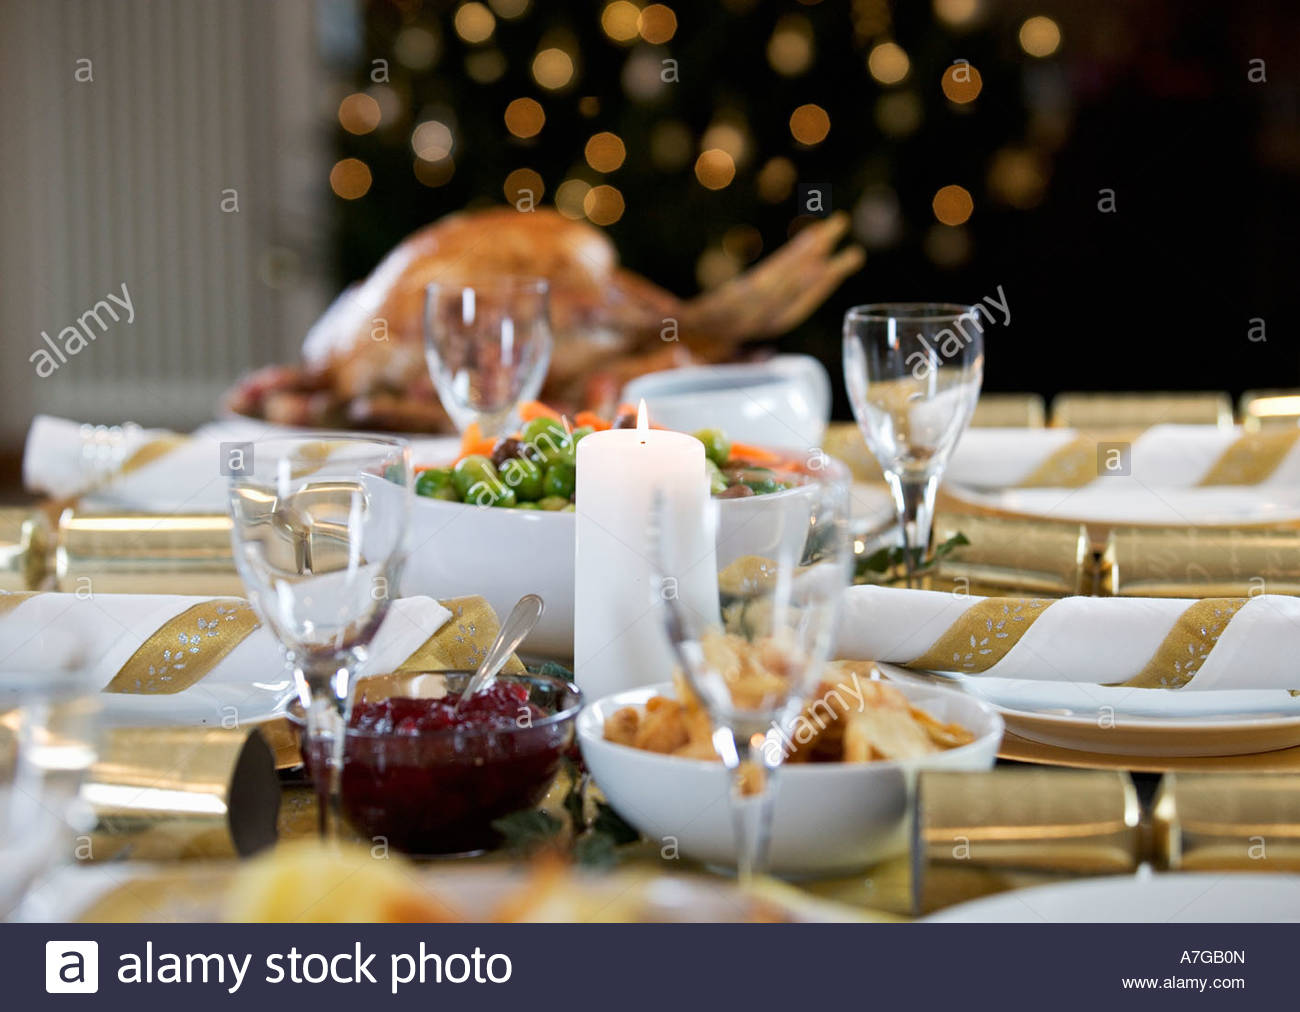 Christmas dinner on the table - Stock Image